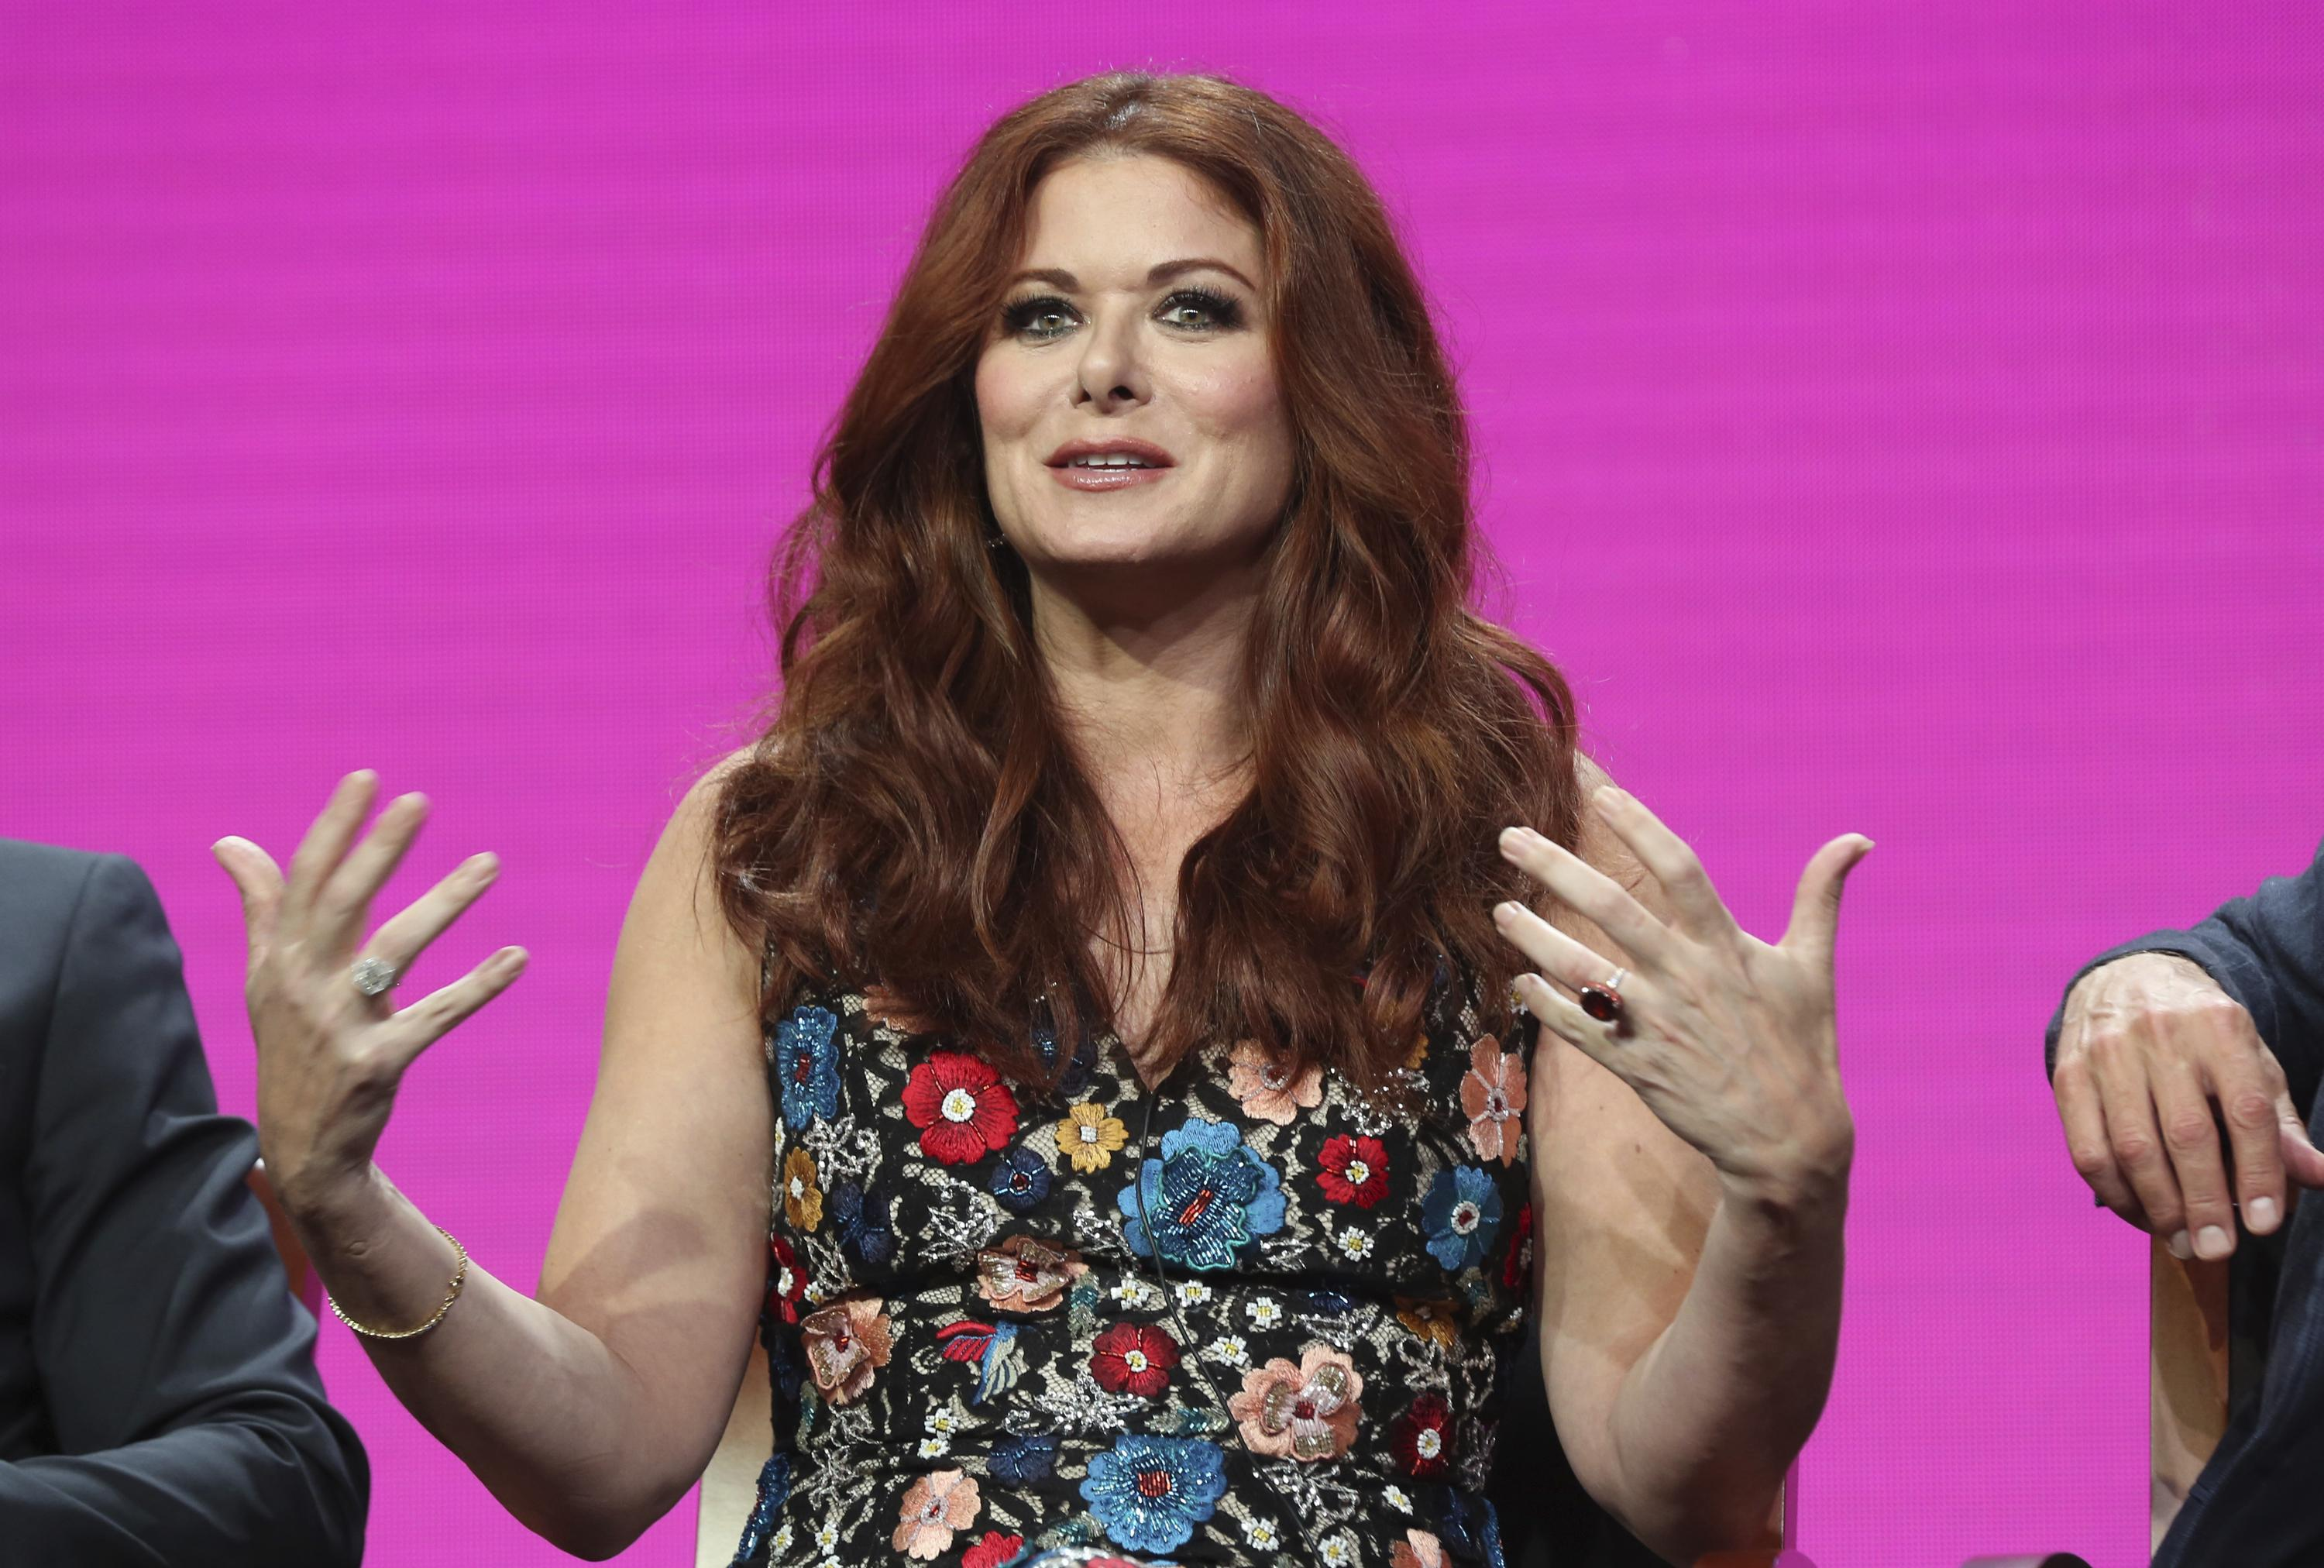 Trump calls Debra Messing 'a McCarthy style Racist' over blacklisting